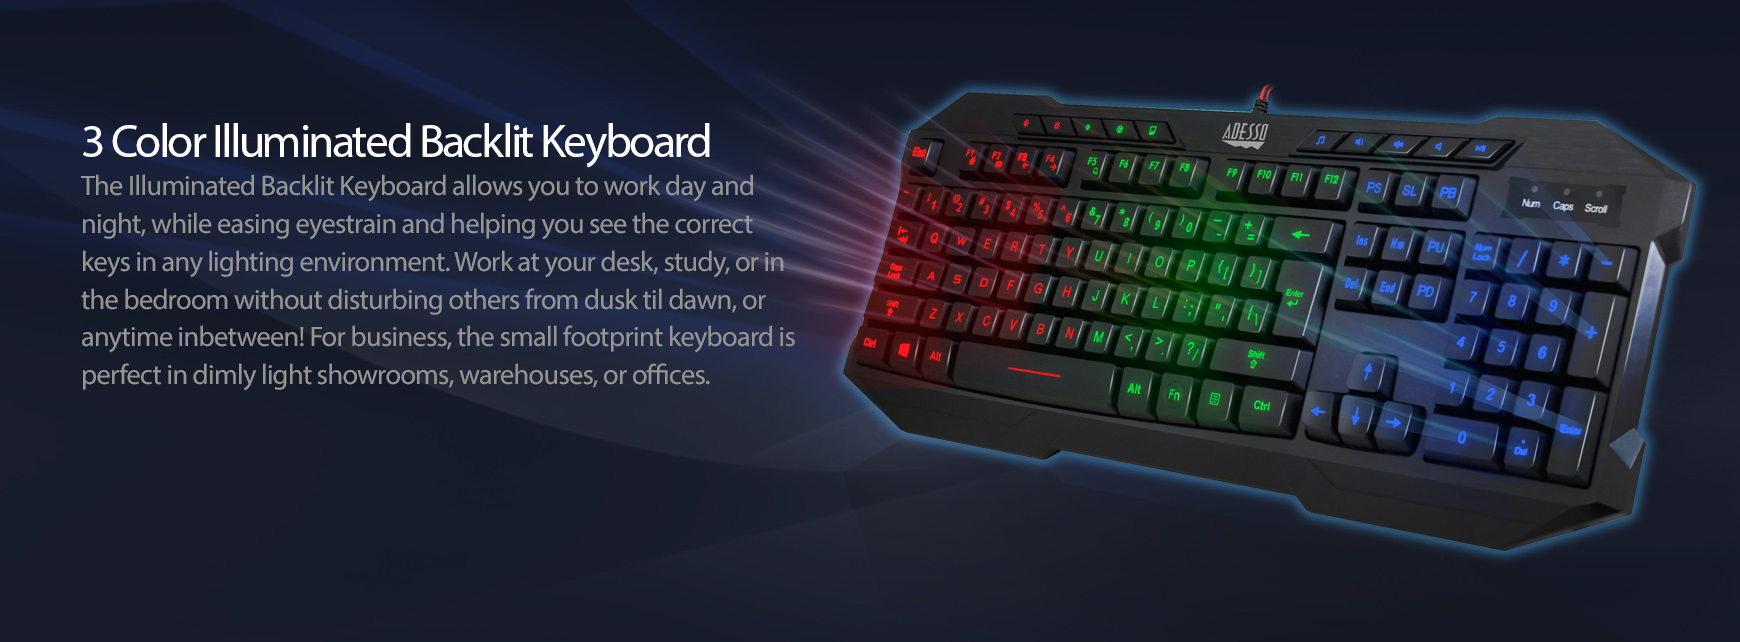 3 Color Illuminated Gaming Keyboard Discontinued Adesso Inc Your Input Device Specialist